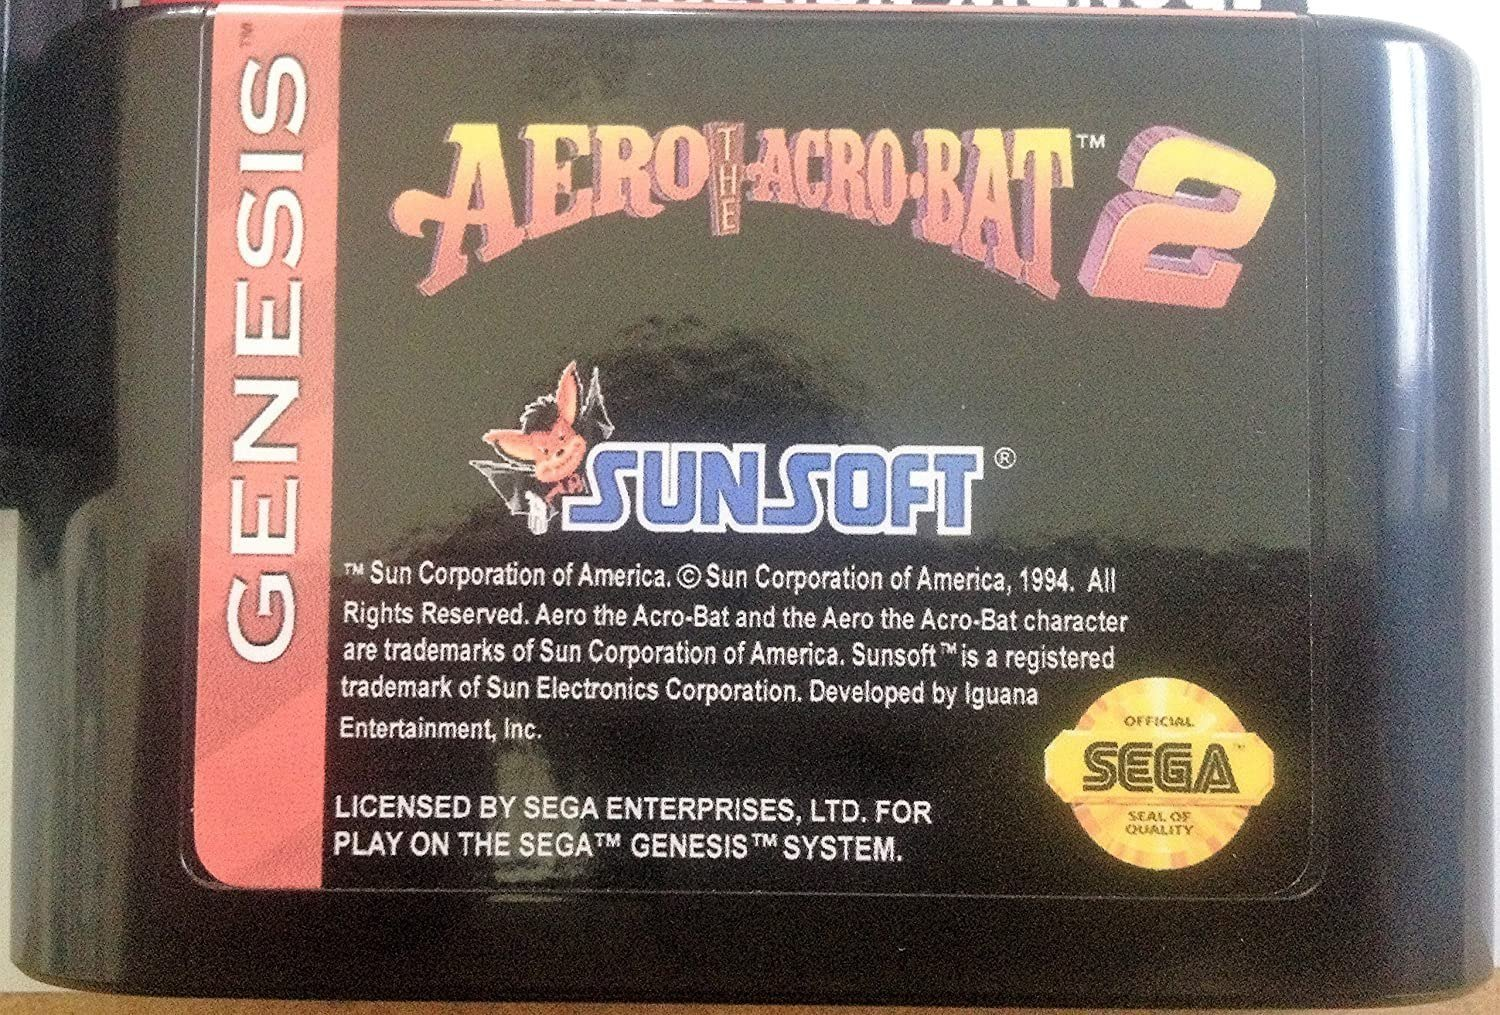 Aero the Acro-Bat 2 (Sega Genesis) � Reproduction Video Game Cartridge